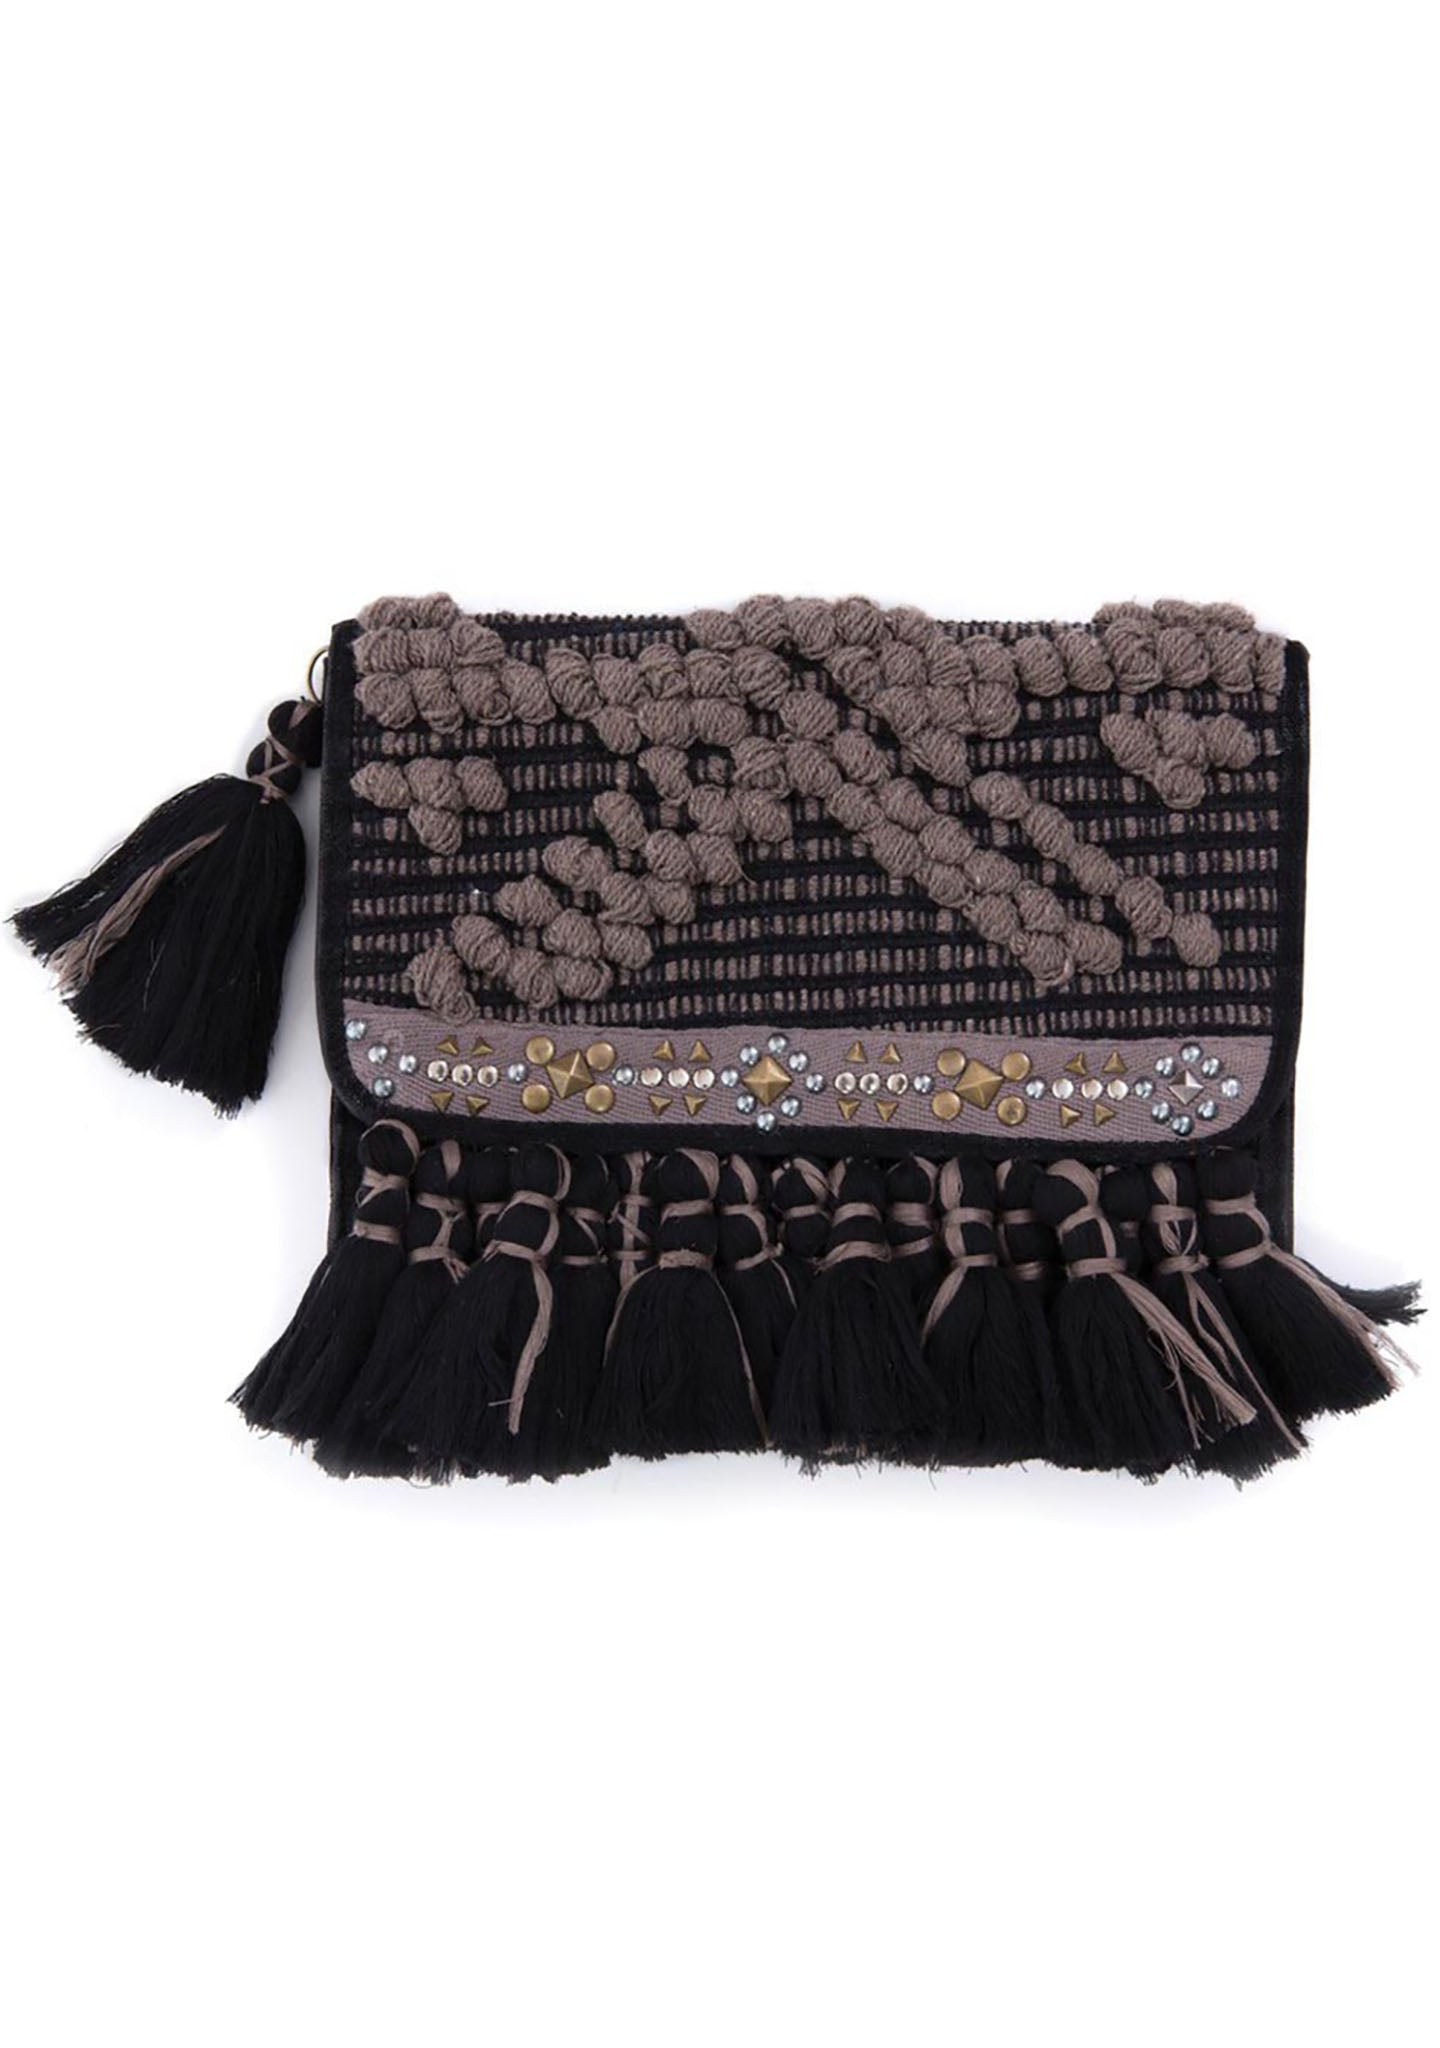 HIPANEMA X AMENAPIH Philly Woven Clutch Purse